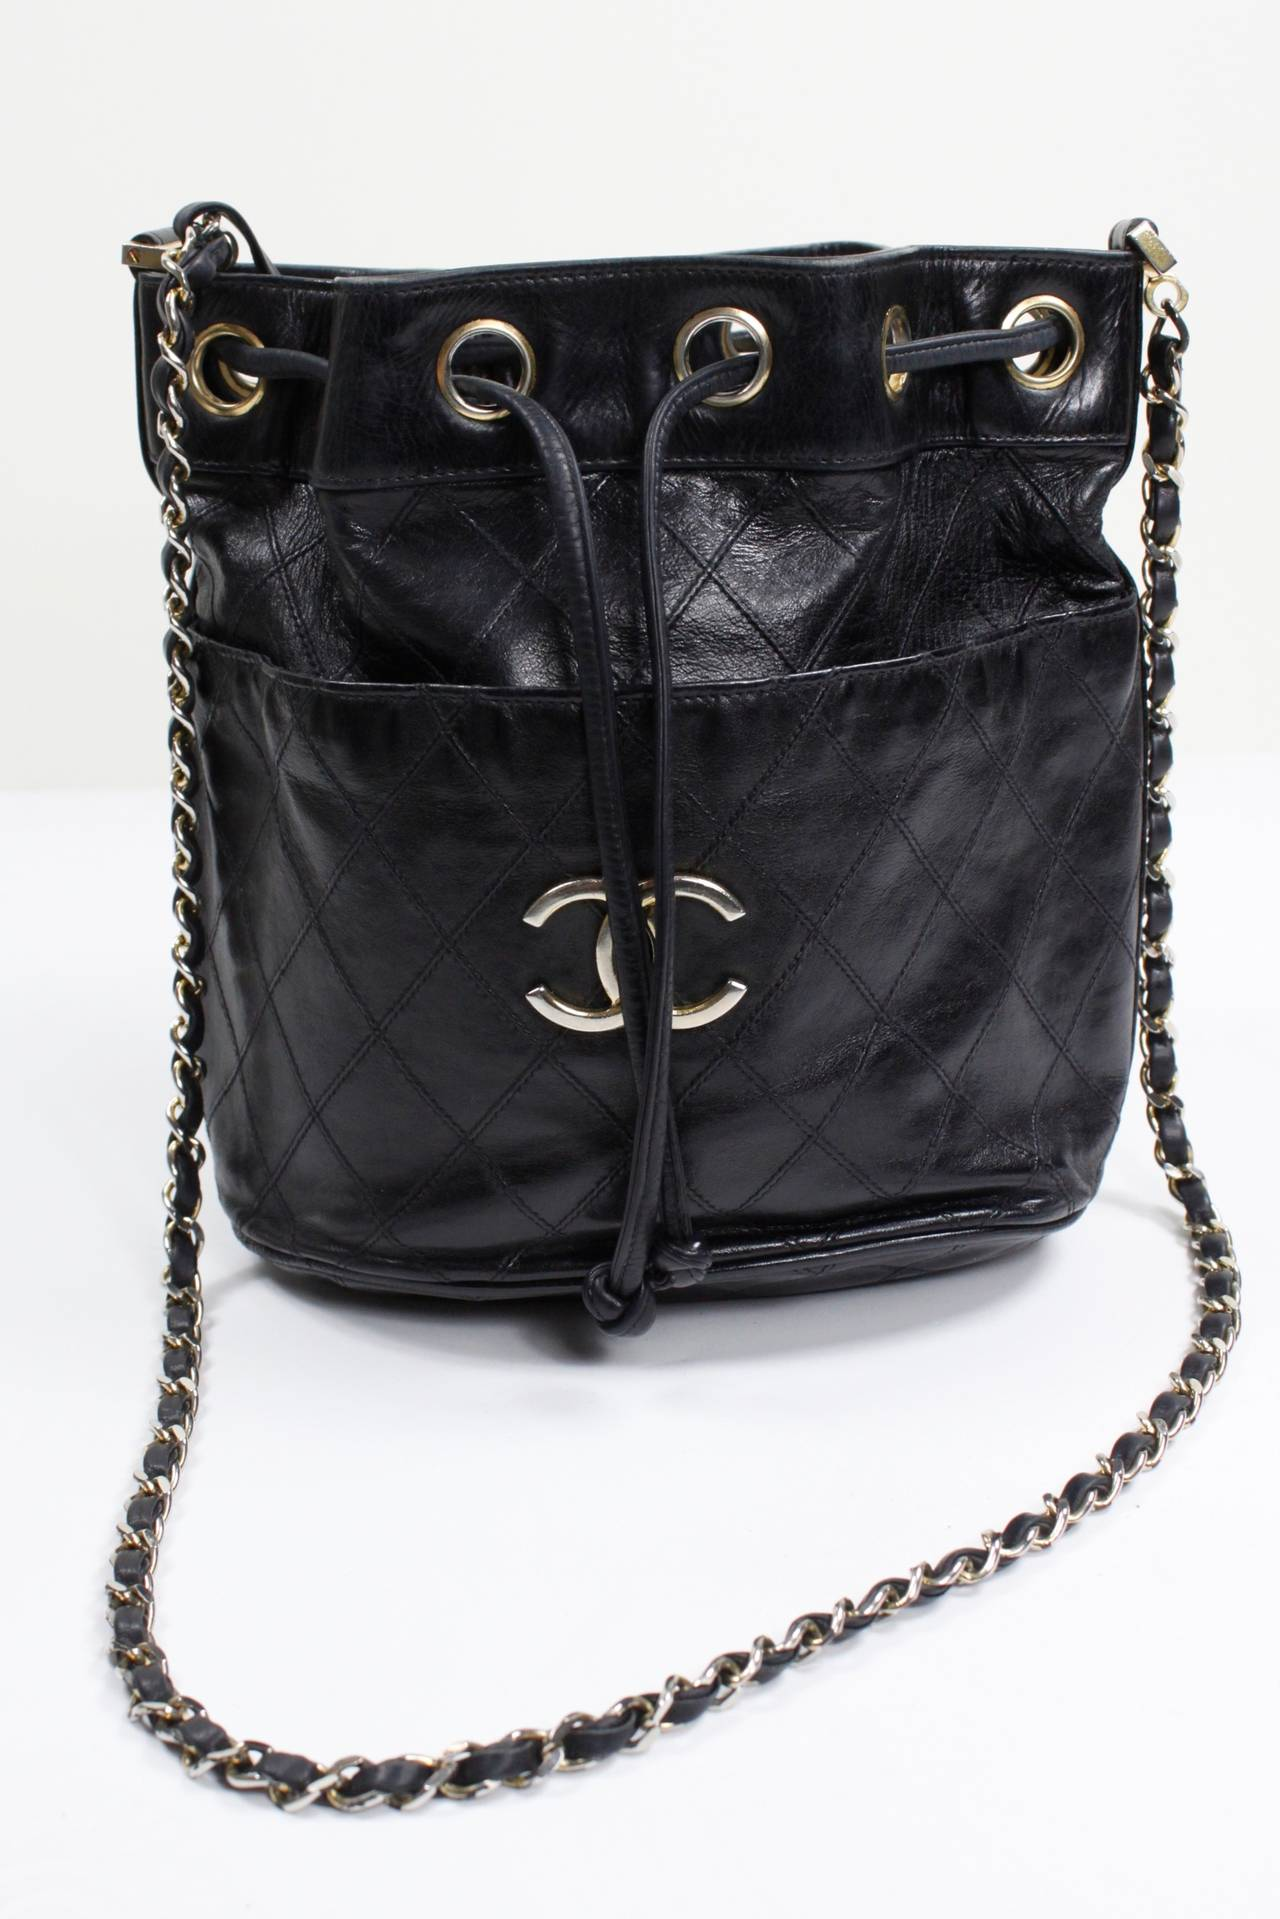 Chanel Black Quilted Bucket Bag with Logo and Chain Strap 3